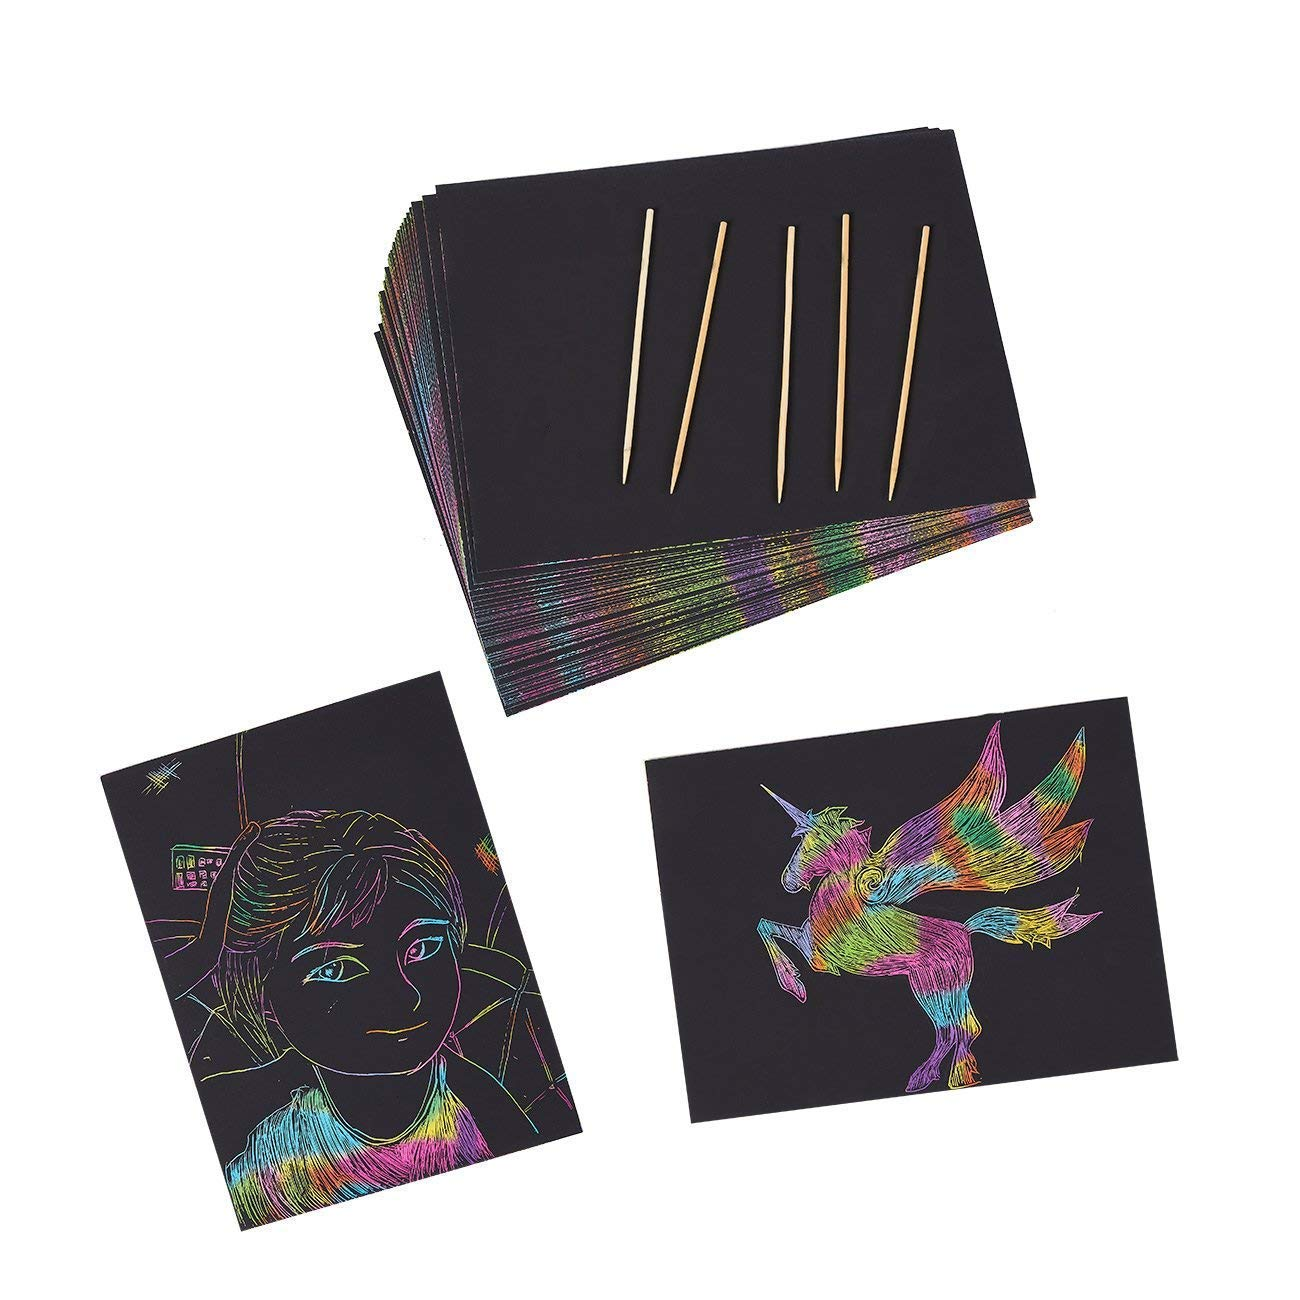 2 Stylus Tools for Kids /& Adults ? 100 Black Paper Sheets ? Create Colorful Rainbow Cards Scratch Art Kit ? Magic Scratch Off Notes /& Pictures /& Other Art Without Ink Notes Bookmarks